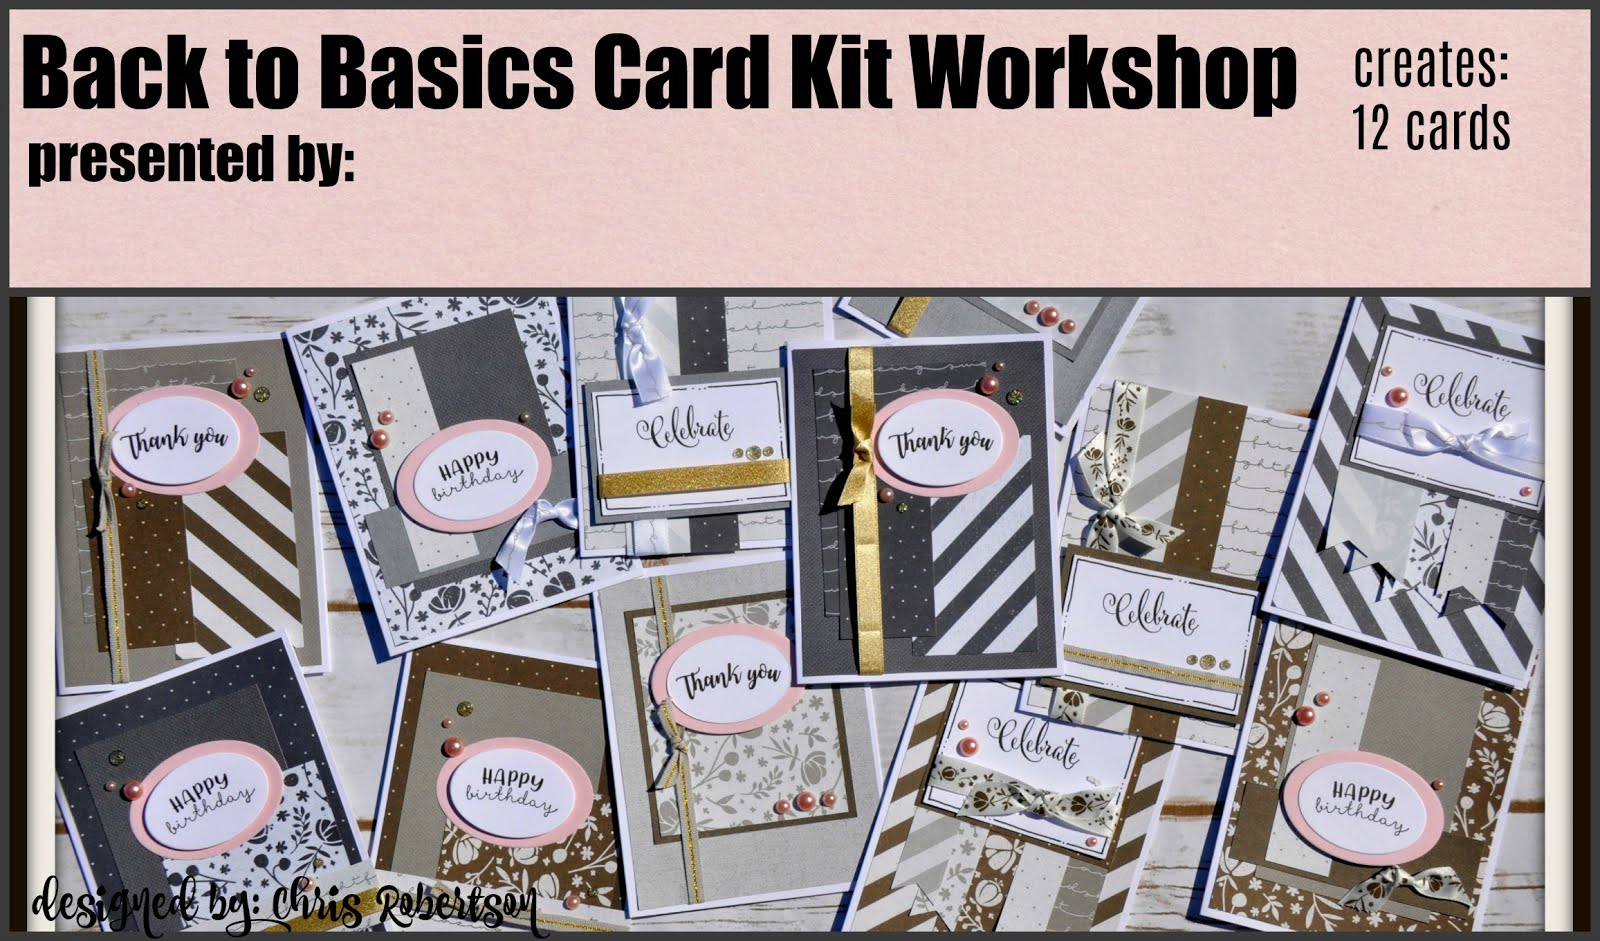 Basics Fundamental Cardmaking Workshop